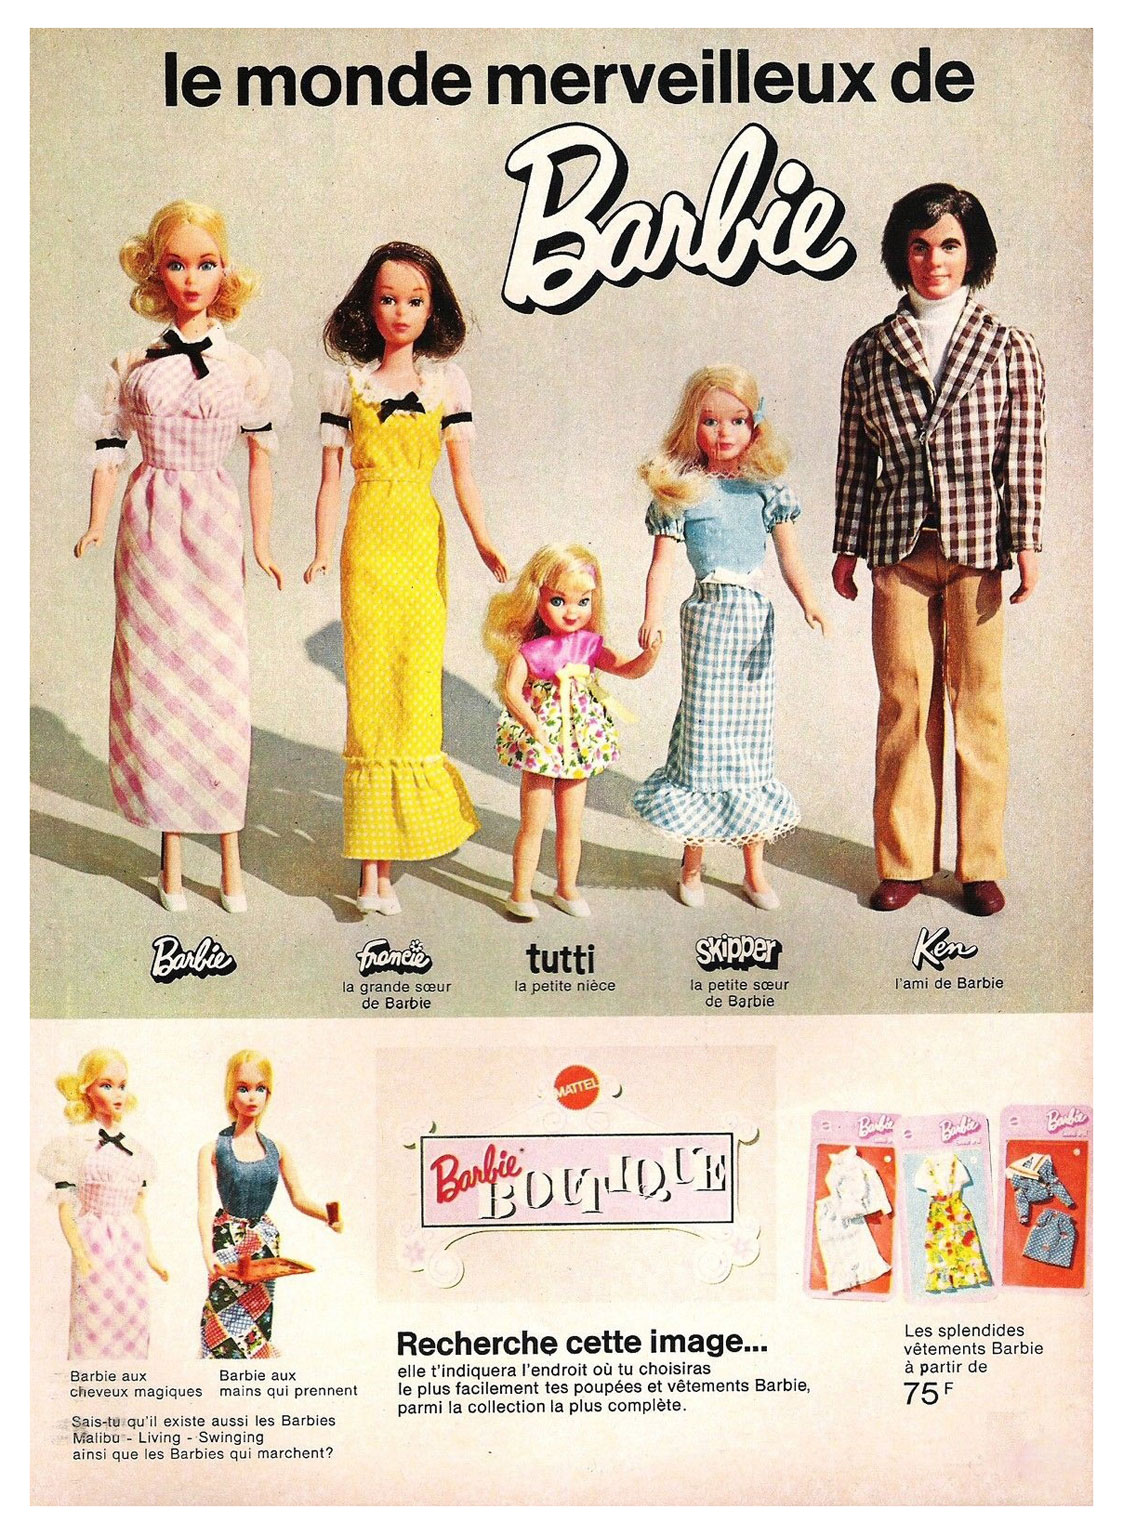 1973 French Barbie advertisement